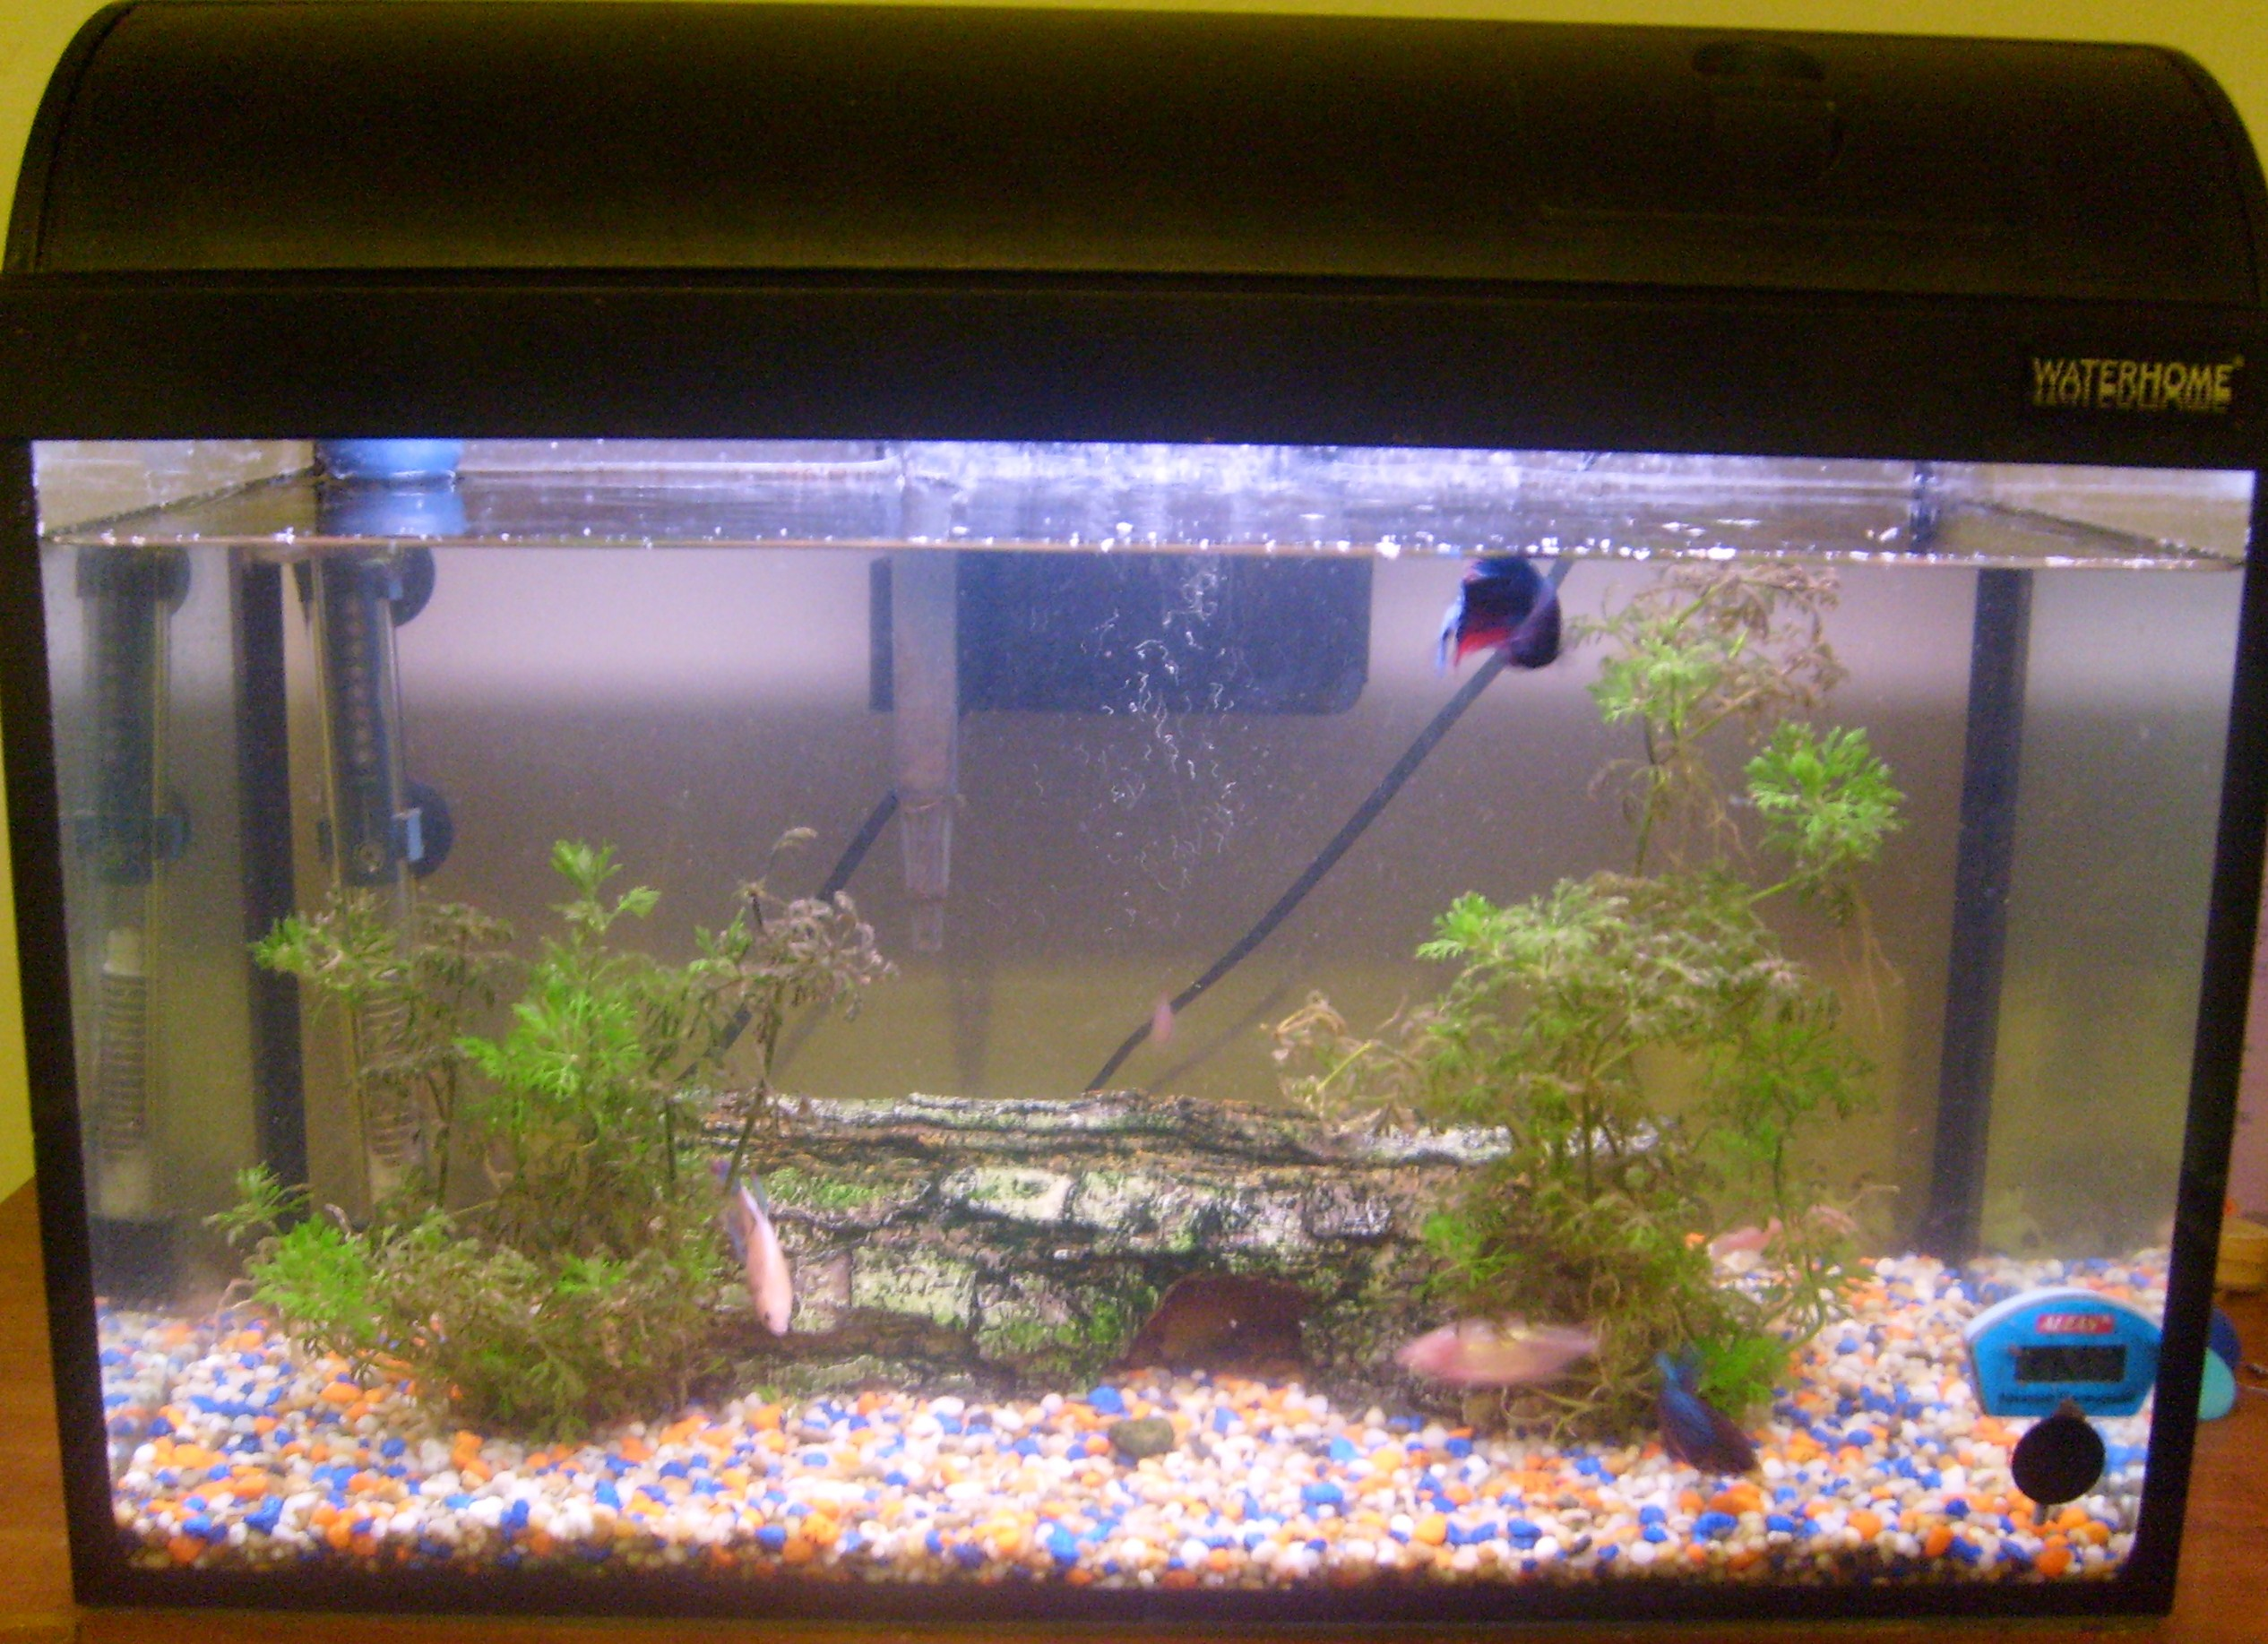 alt=Photo of water-filled glass tank containing with two green plants and pebbles on the bottom.